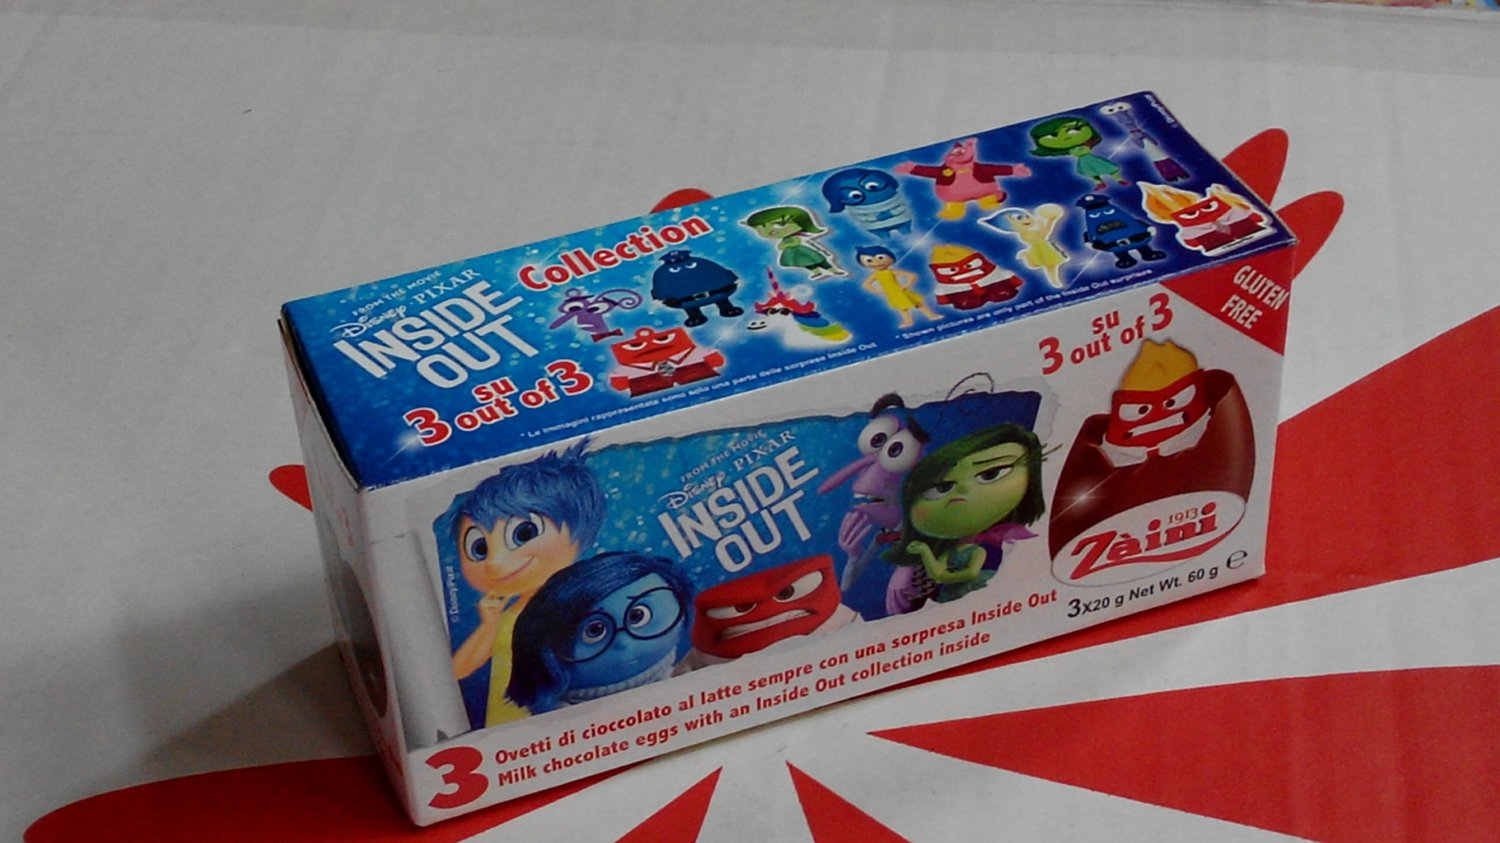 Zaini Disney Pixar INSIDE OUT Chocolate Surprise 3 Eggs With Toy Figure Inside choco ladies kid